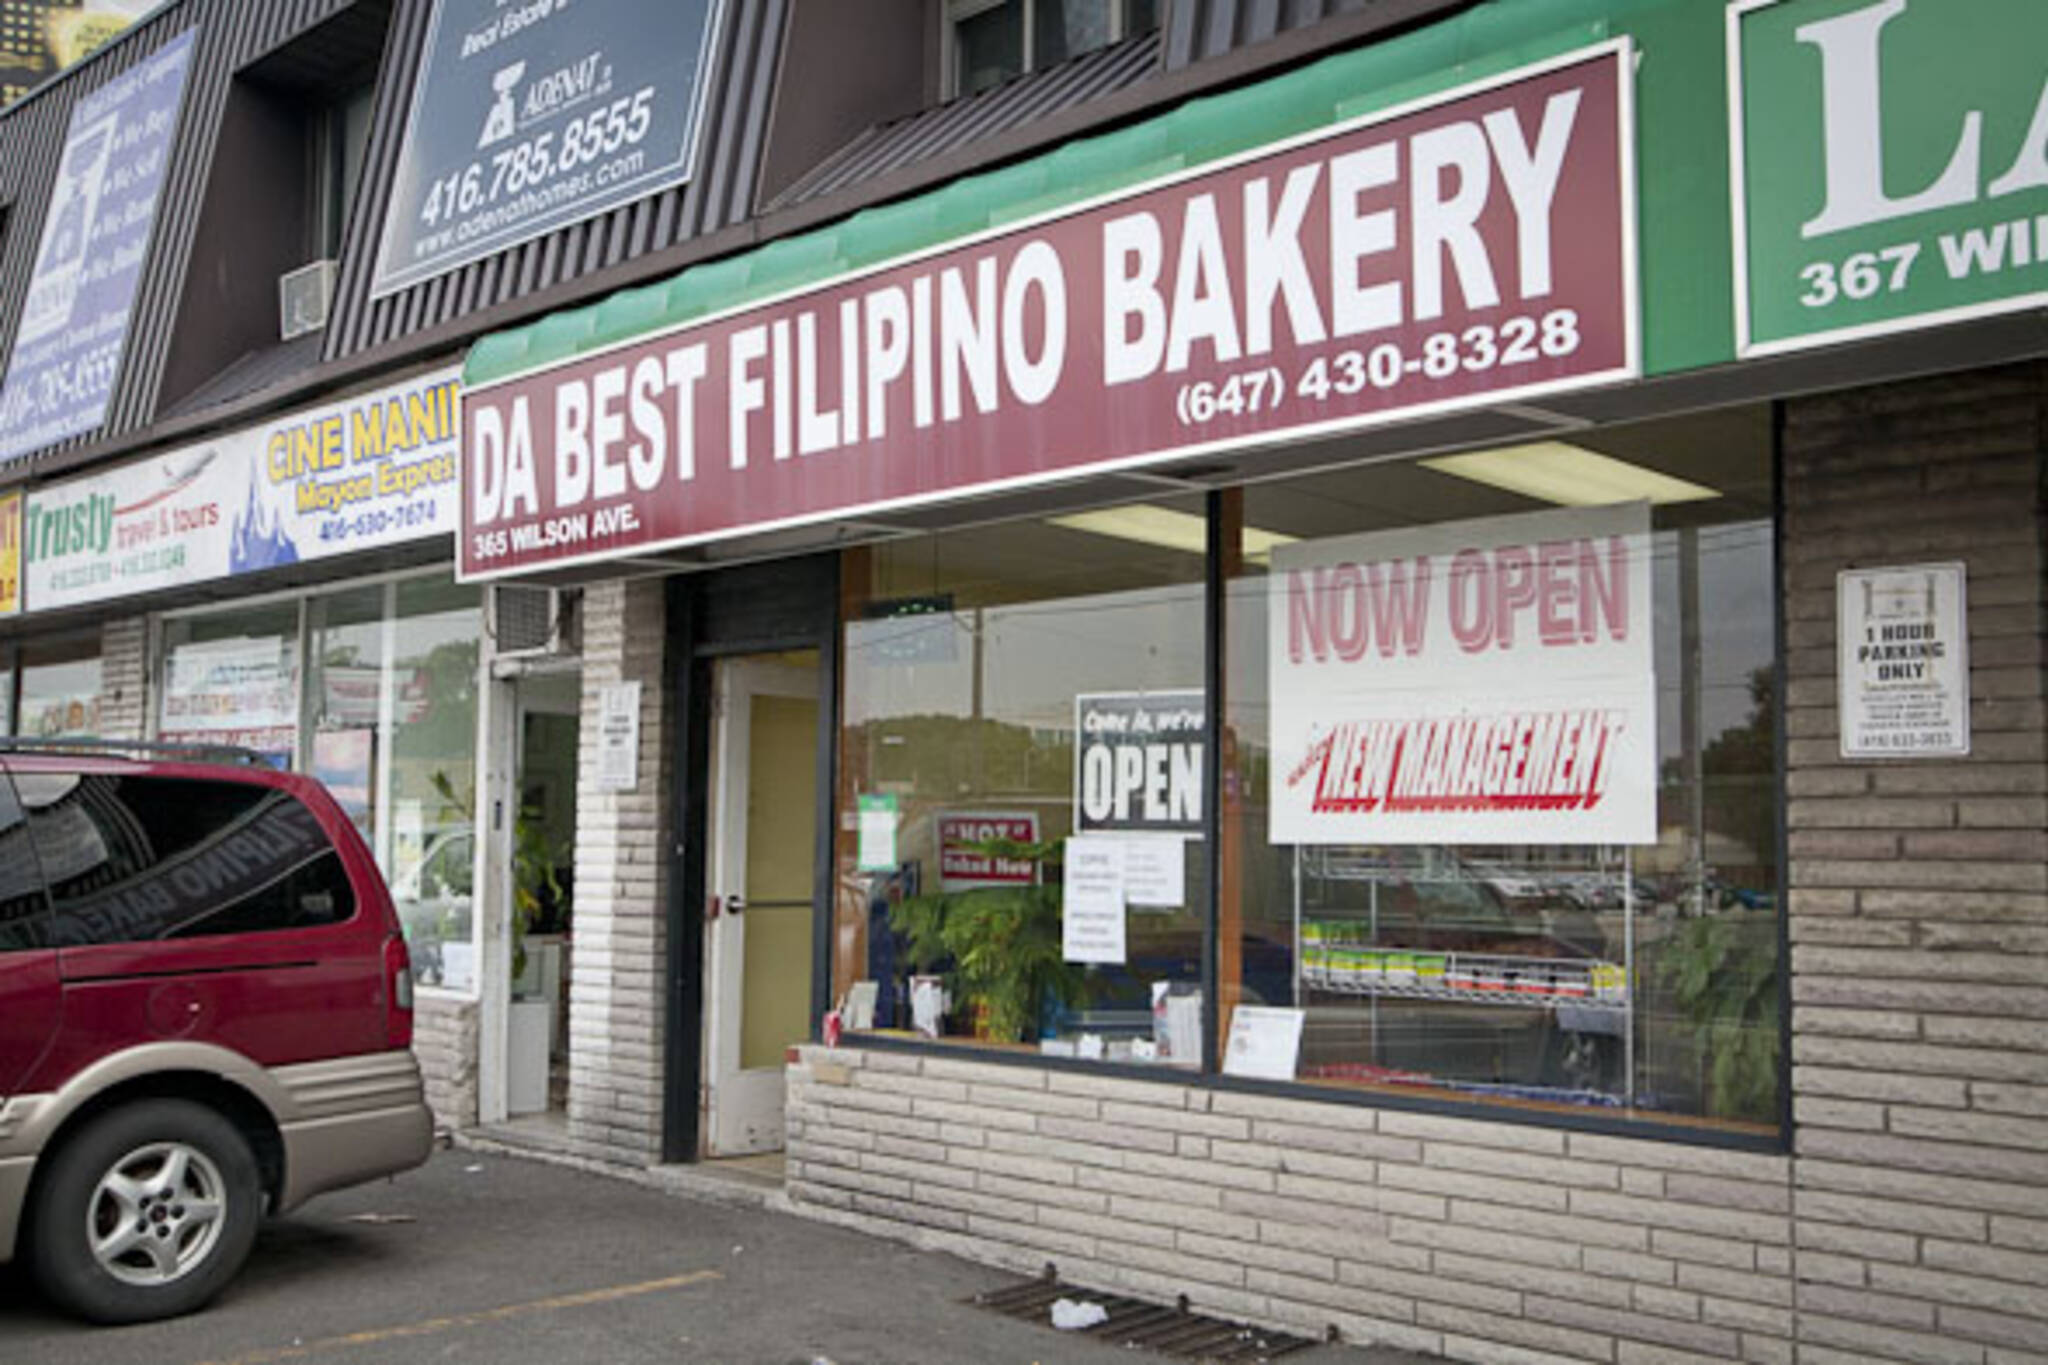 Da Best Filipino Bakery